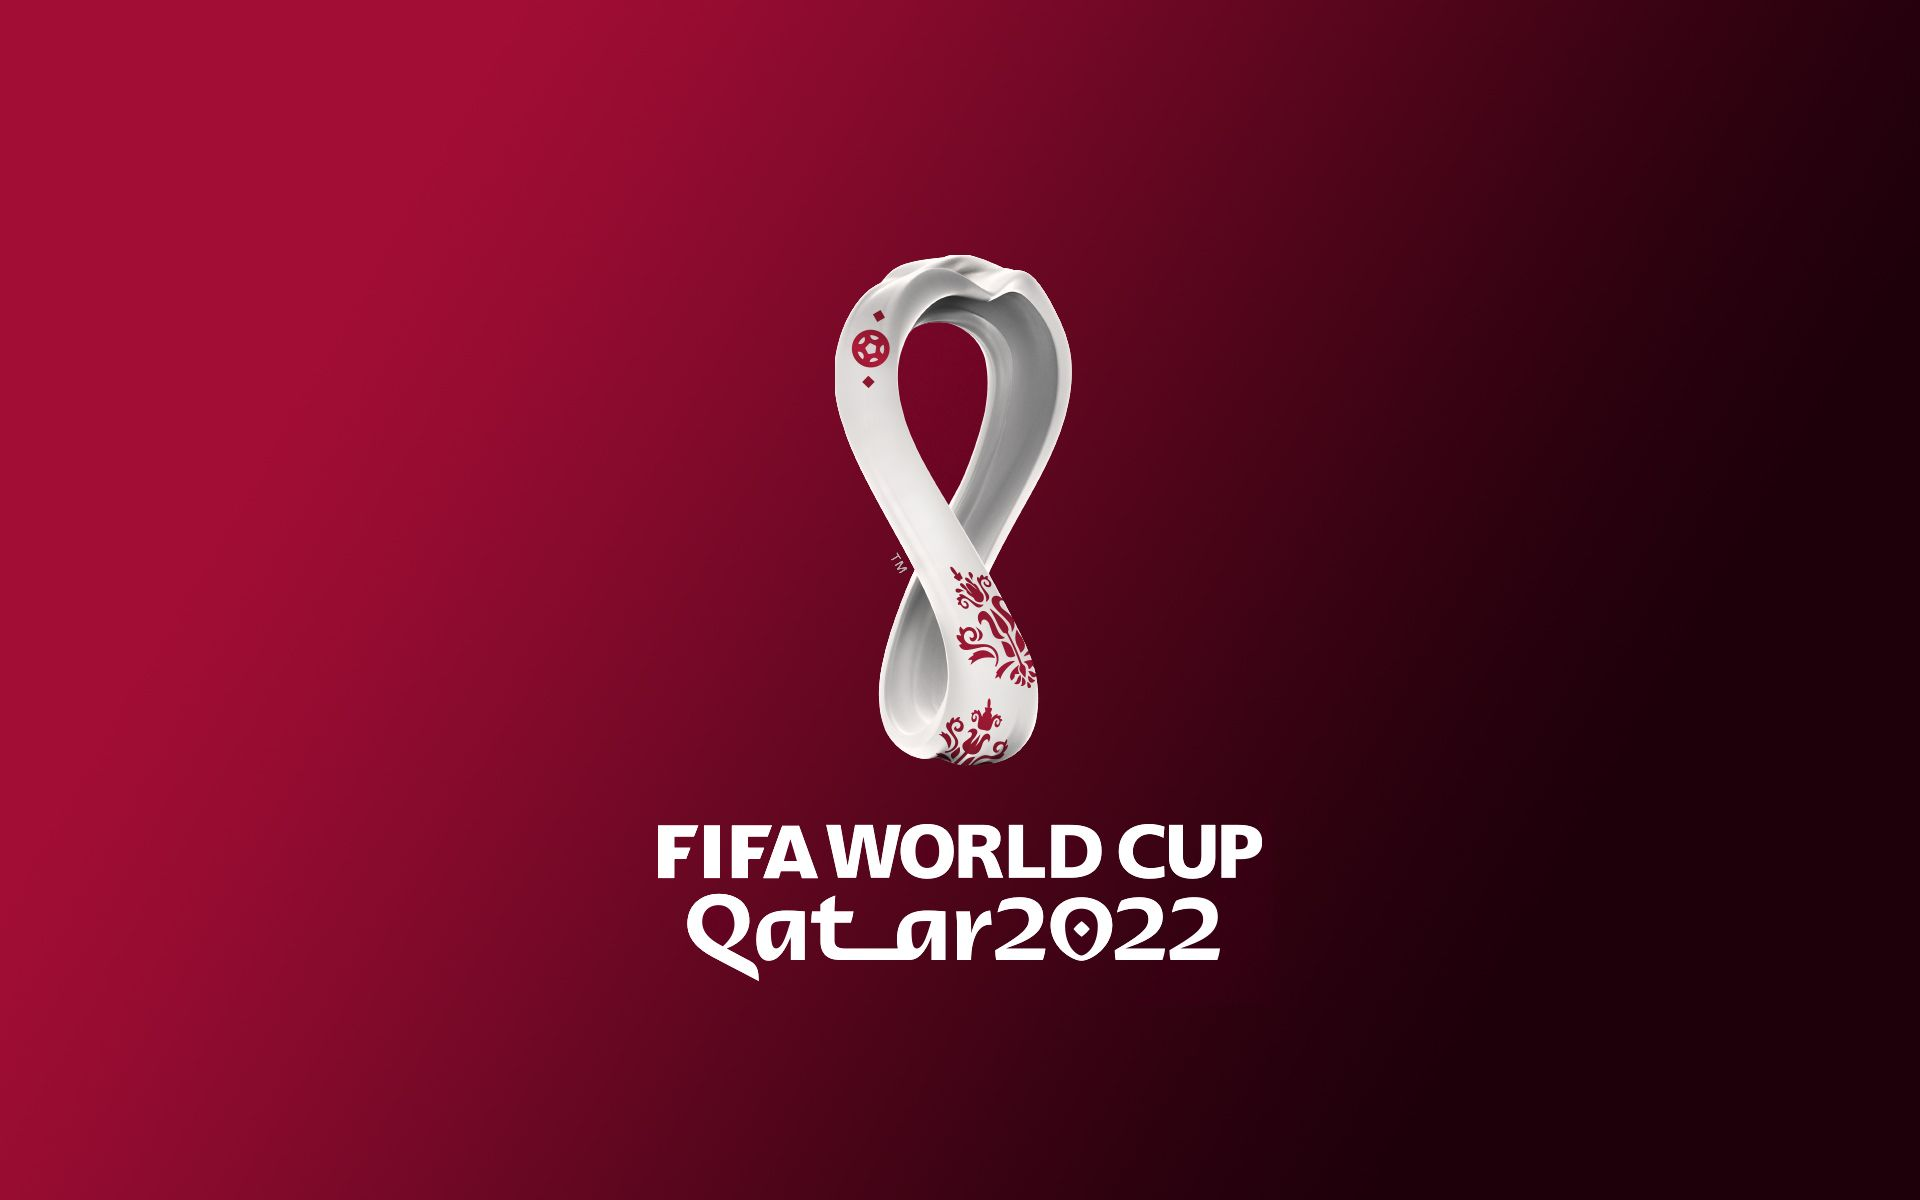 Qatar World Cup 2022 Collection See All Wallpapers Wallpapers Background Sport In 2020 World Cup 2022 World Cup Fifa World Cup